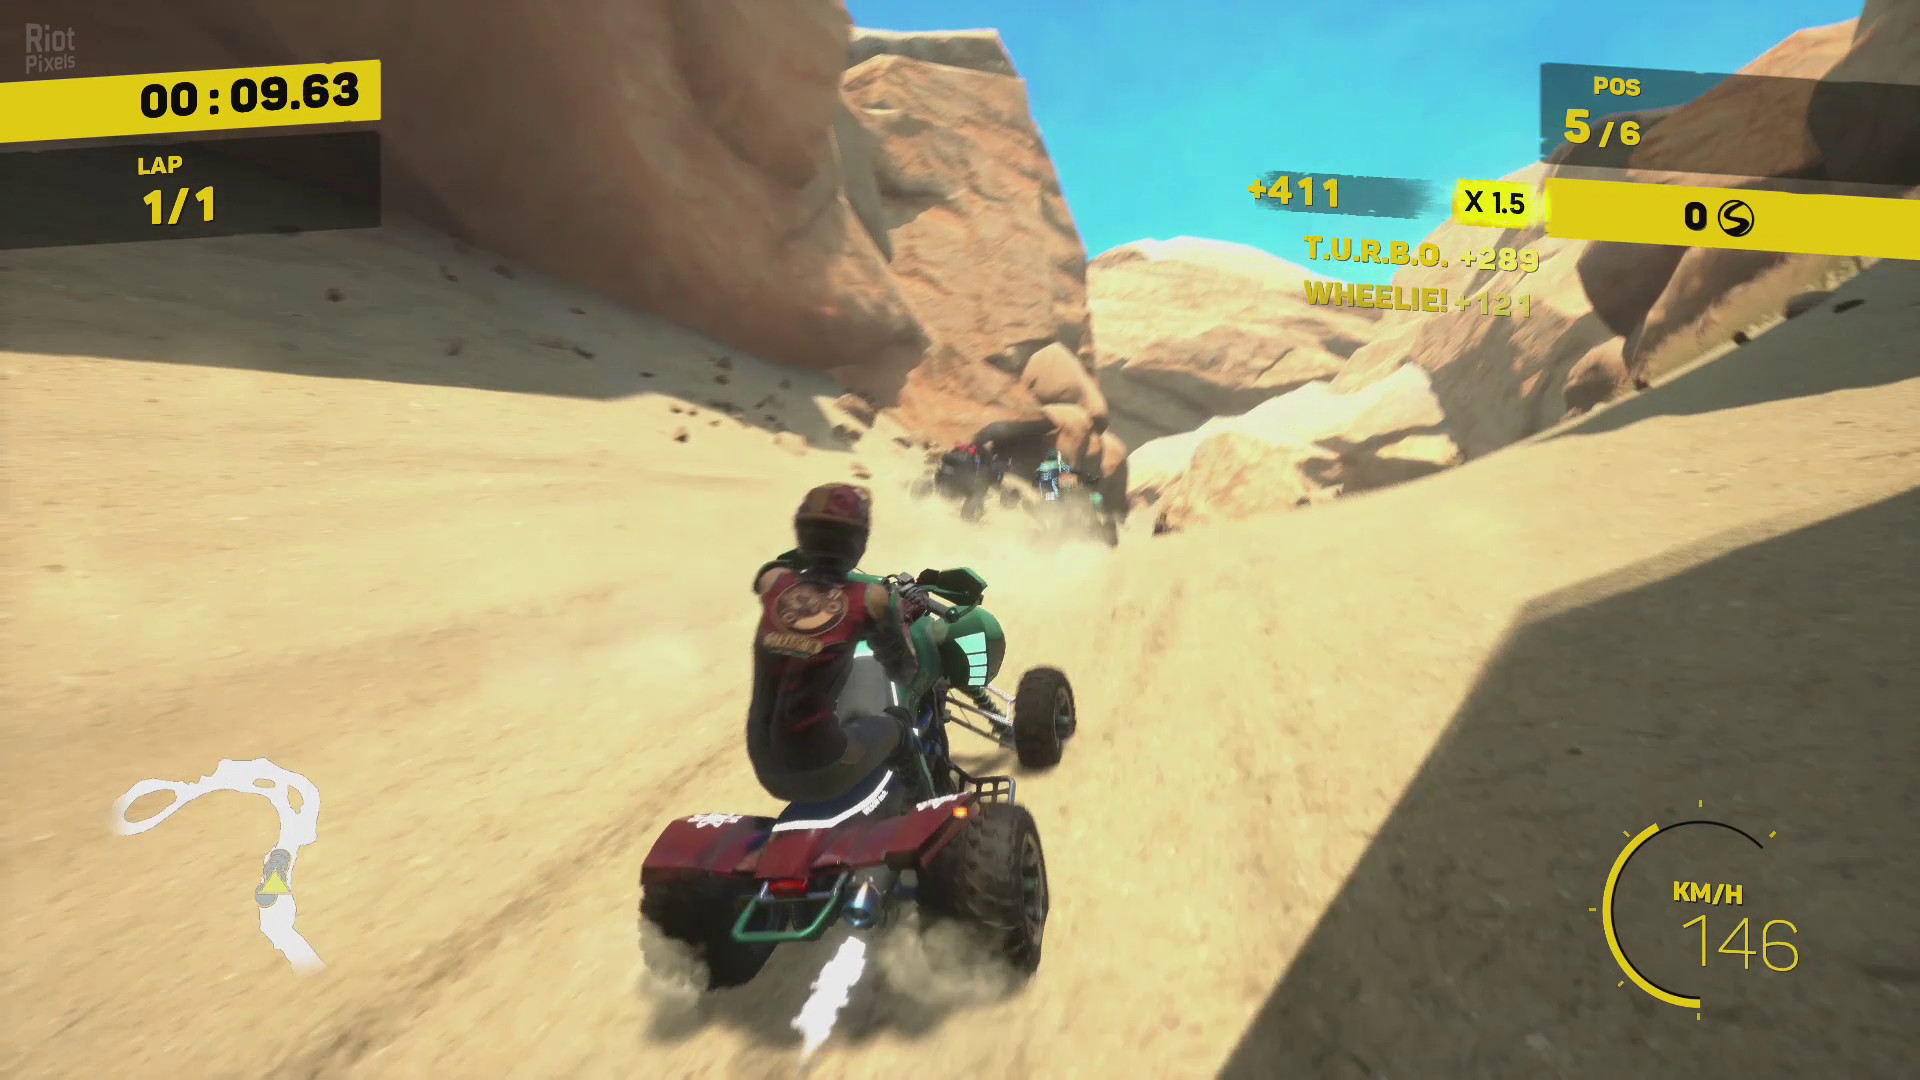 Buggy,Racing,Offroad,Moto,لعبة,Fitgirl,ريباك,العاب,رياضية,كاملة,game,games,sport,sports,race,racing